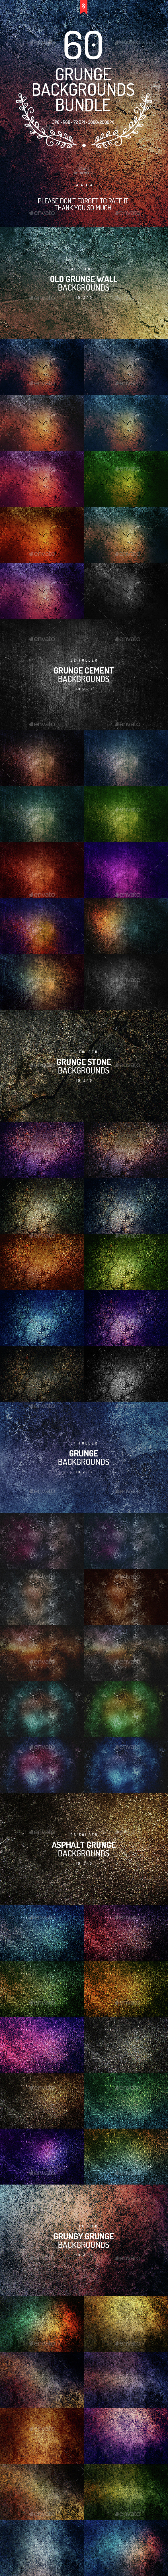 60 Grunge Backgrounds Bundle - Urban Backgrounds